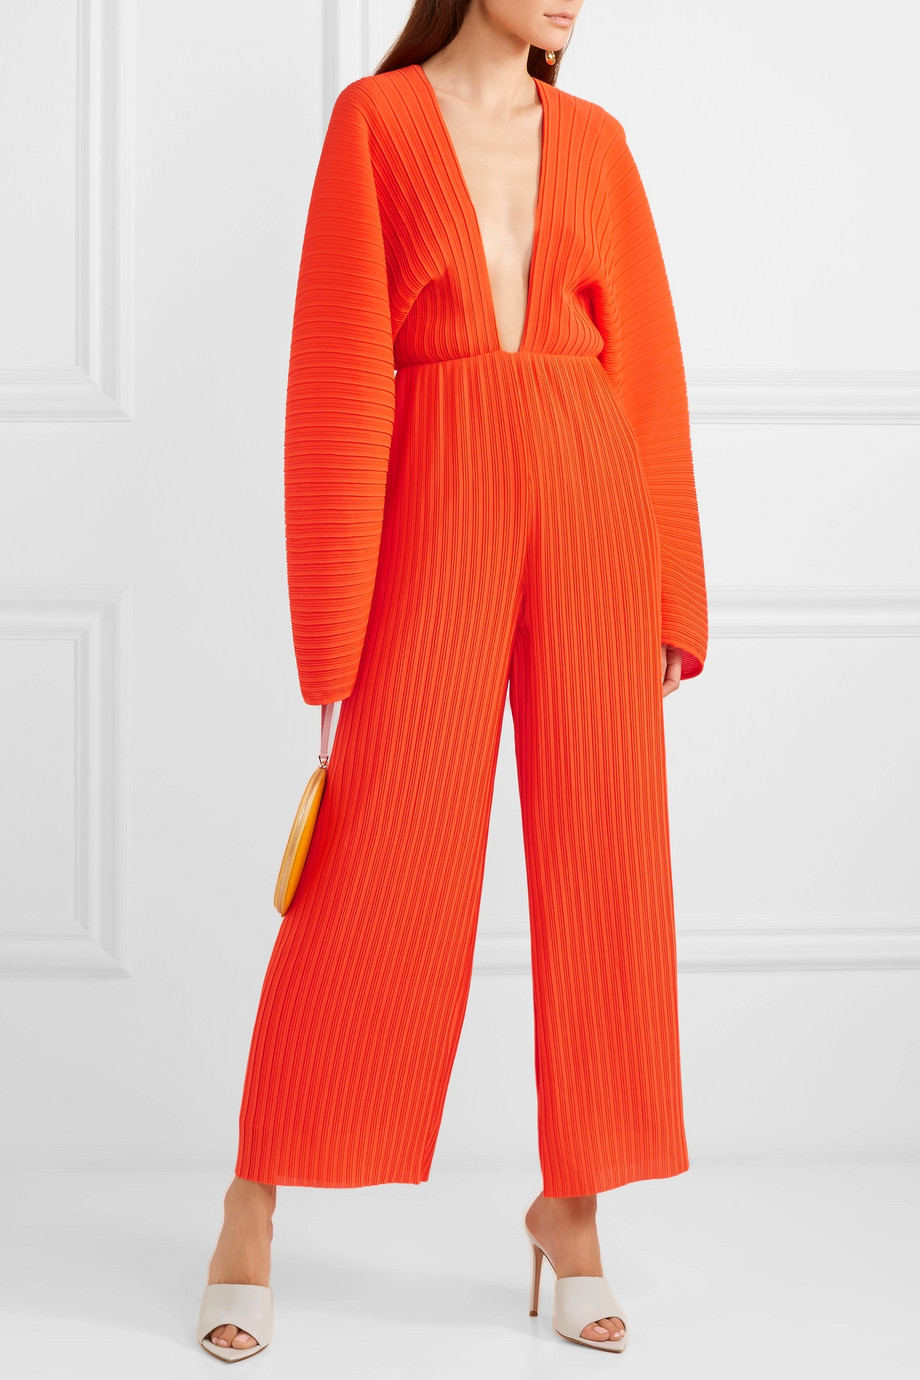 what-to-wear-for-a-spring-wedding-guest-outfit-orange-jumpsuit-hairr-white-shoe-sandalh-dinner.jpg